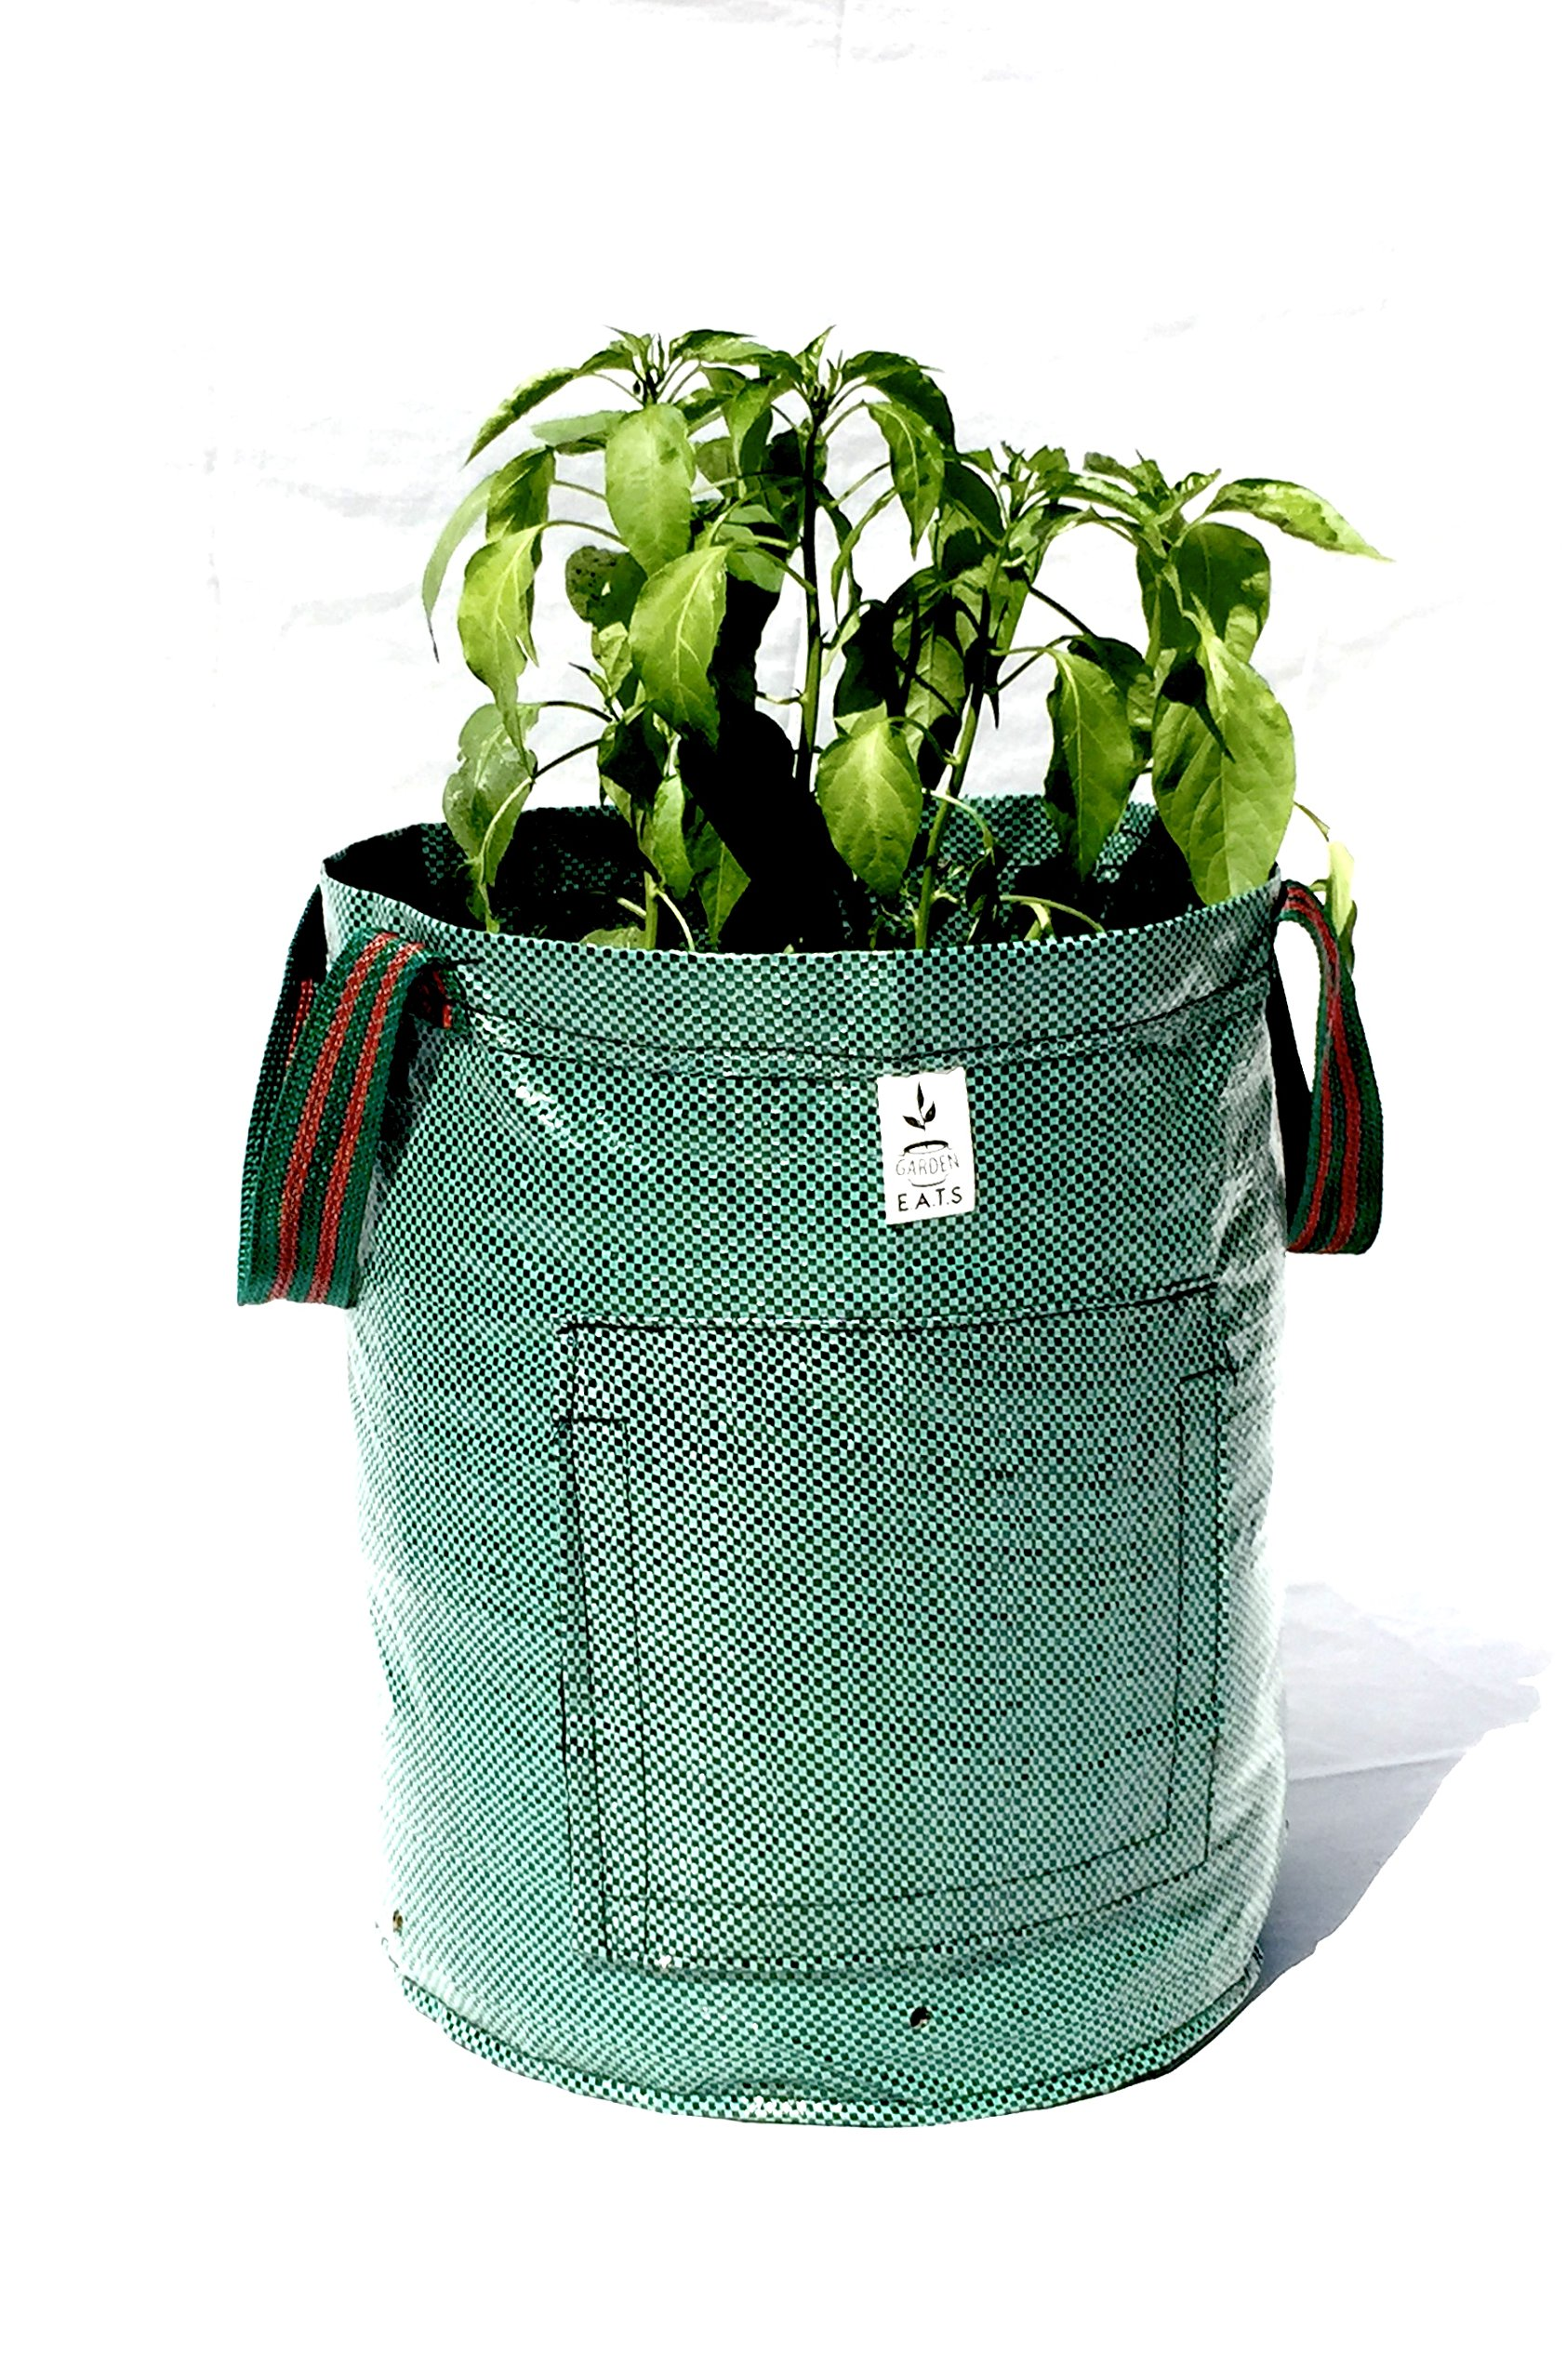 Garden E.A.T.S. 10 Gallon Garden Potato Grow Bag With Handles (2Pack)-Grow Veggies: Onions, Potatoes, Carrots & Anything You Desire, Smart Easy Access Door To Harvest All Root Vegetables by Garden E.A.T.S.